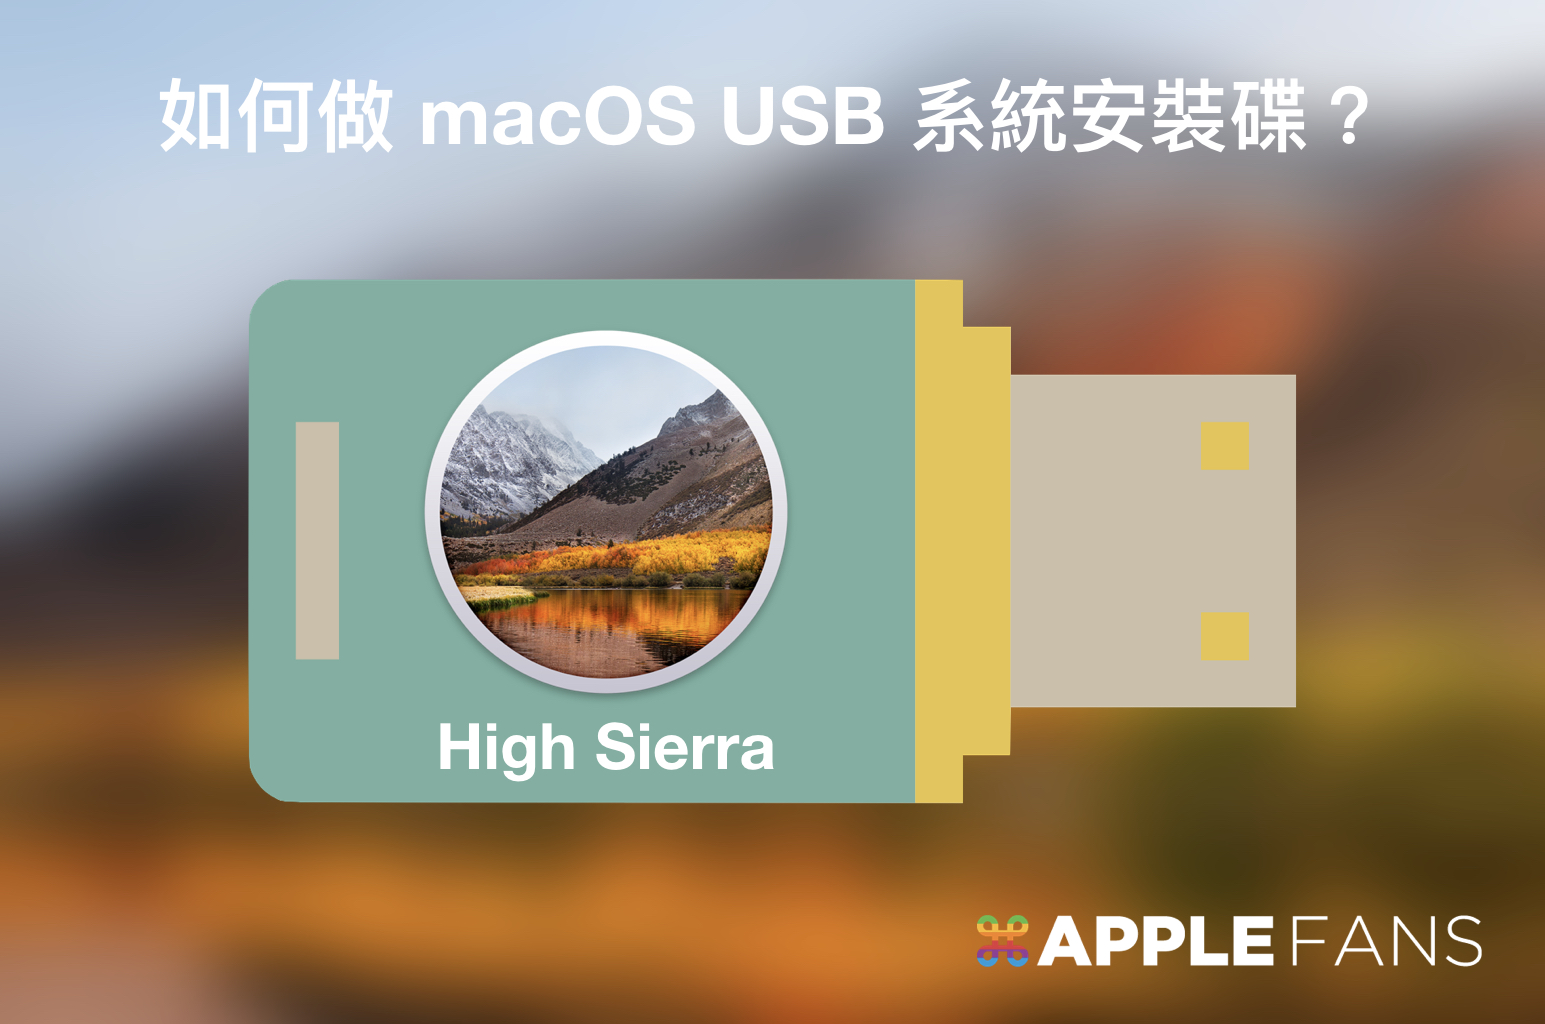 High Sierra USB